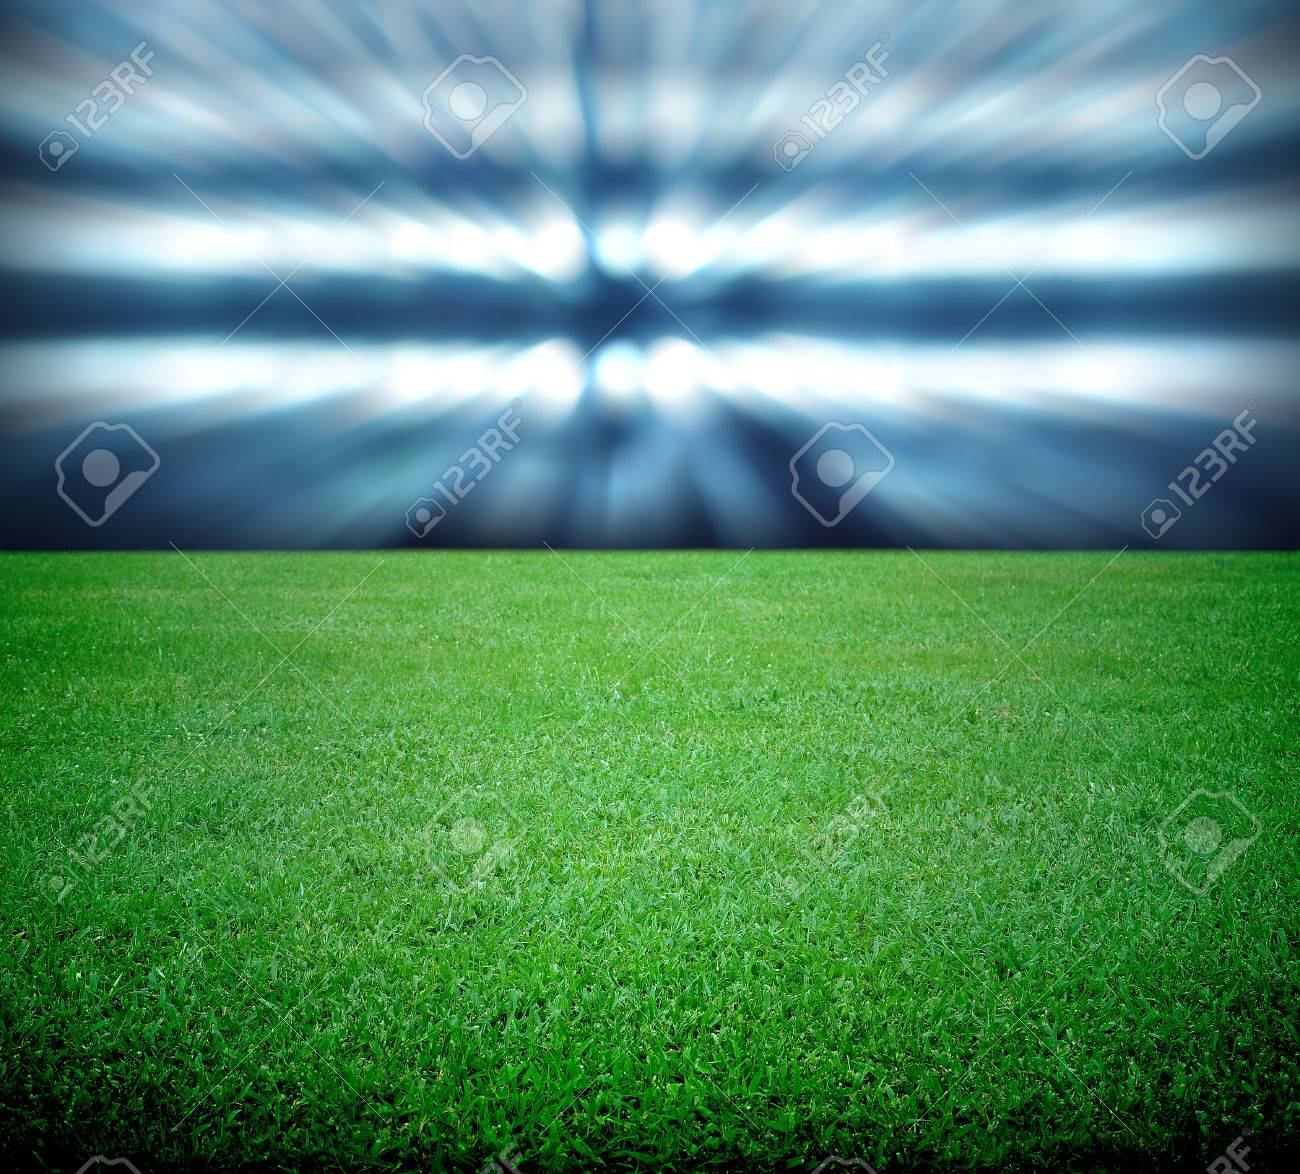 soccer field and the bright lights - 24230228